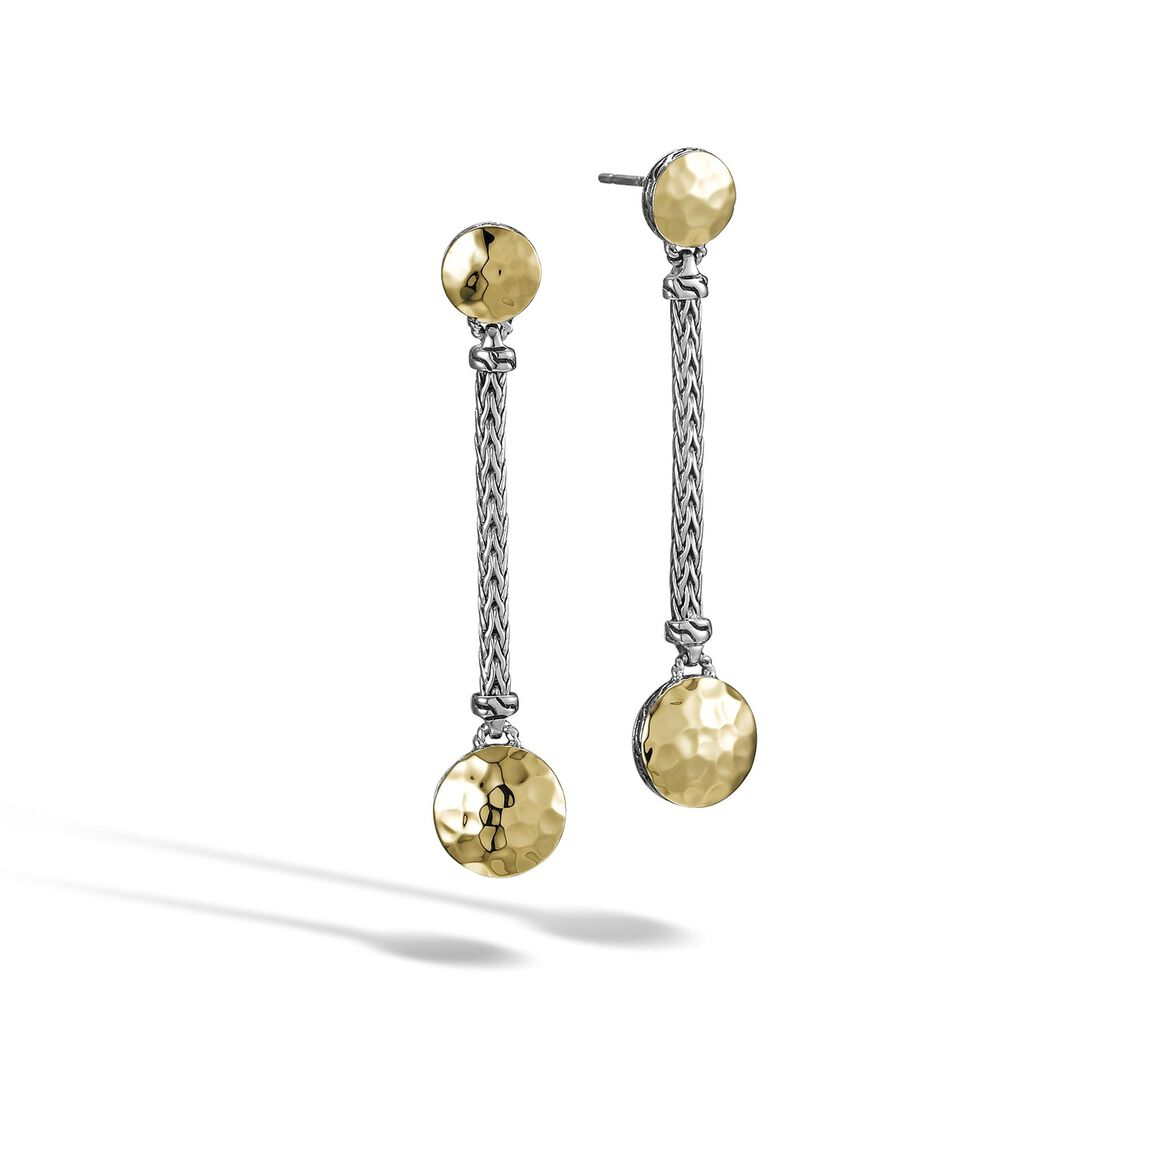 Dot Linear Drop Earring in Silver and Hammered 18K Gold